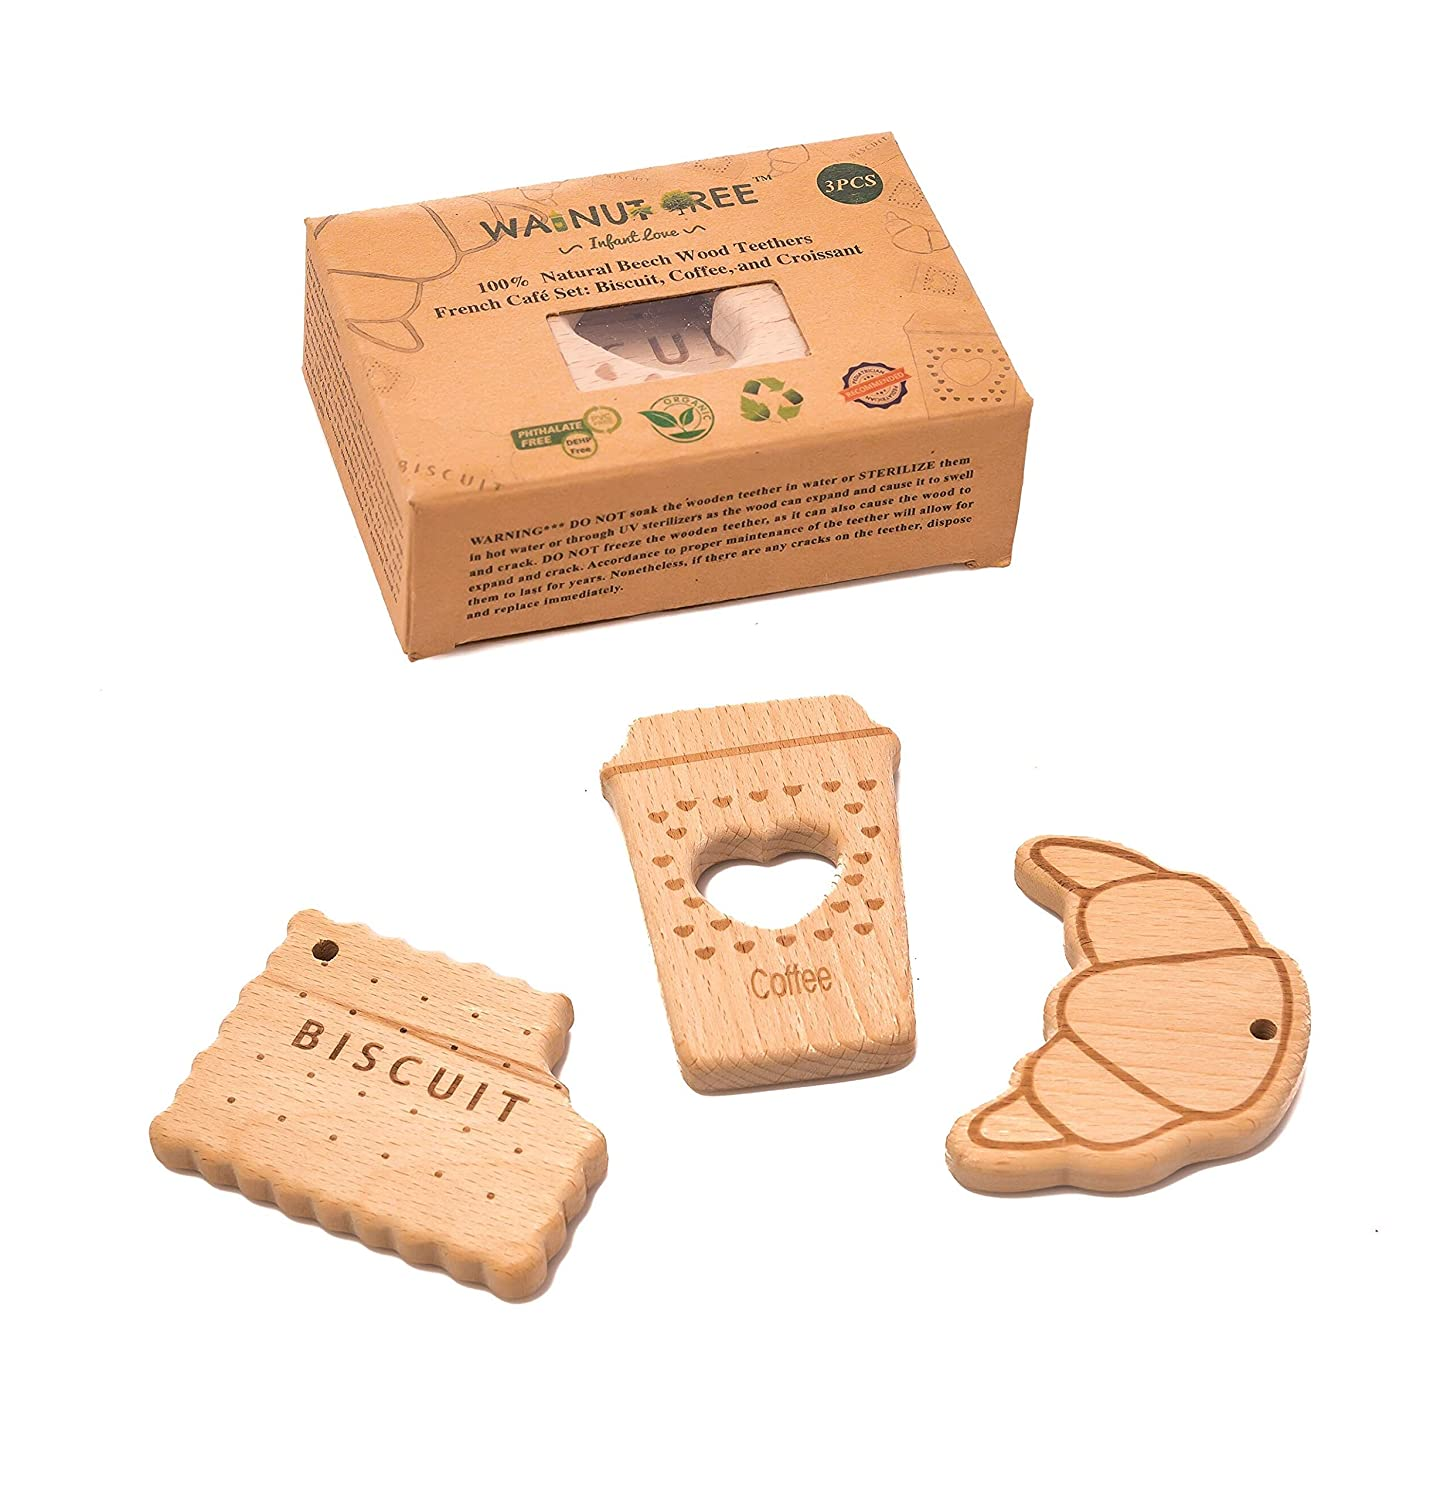 Perfect 100/% BPA Walnut Tree Infant Love Organic Natural Beech Wood Handcrafted Teether| Caf/é Set 3 PCS|: 100/% Natural Soothing Beechwood Rattle Toys PVC and Phthalate Free. Lead